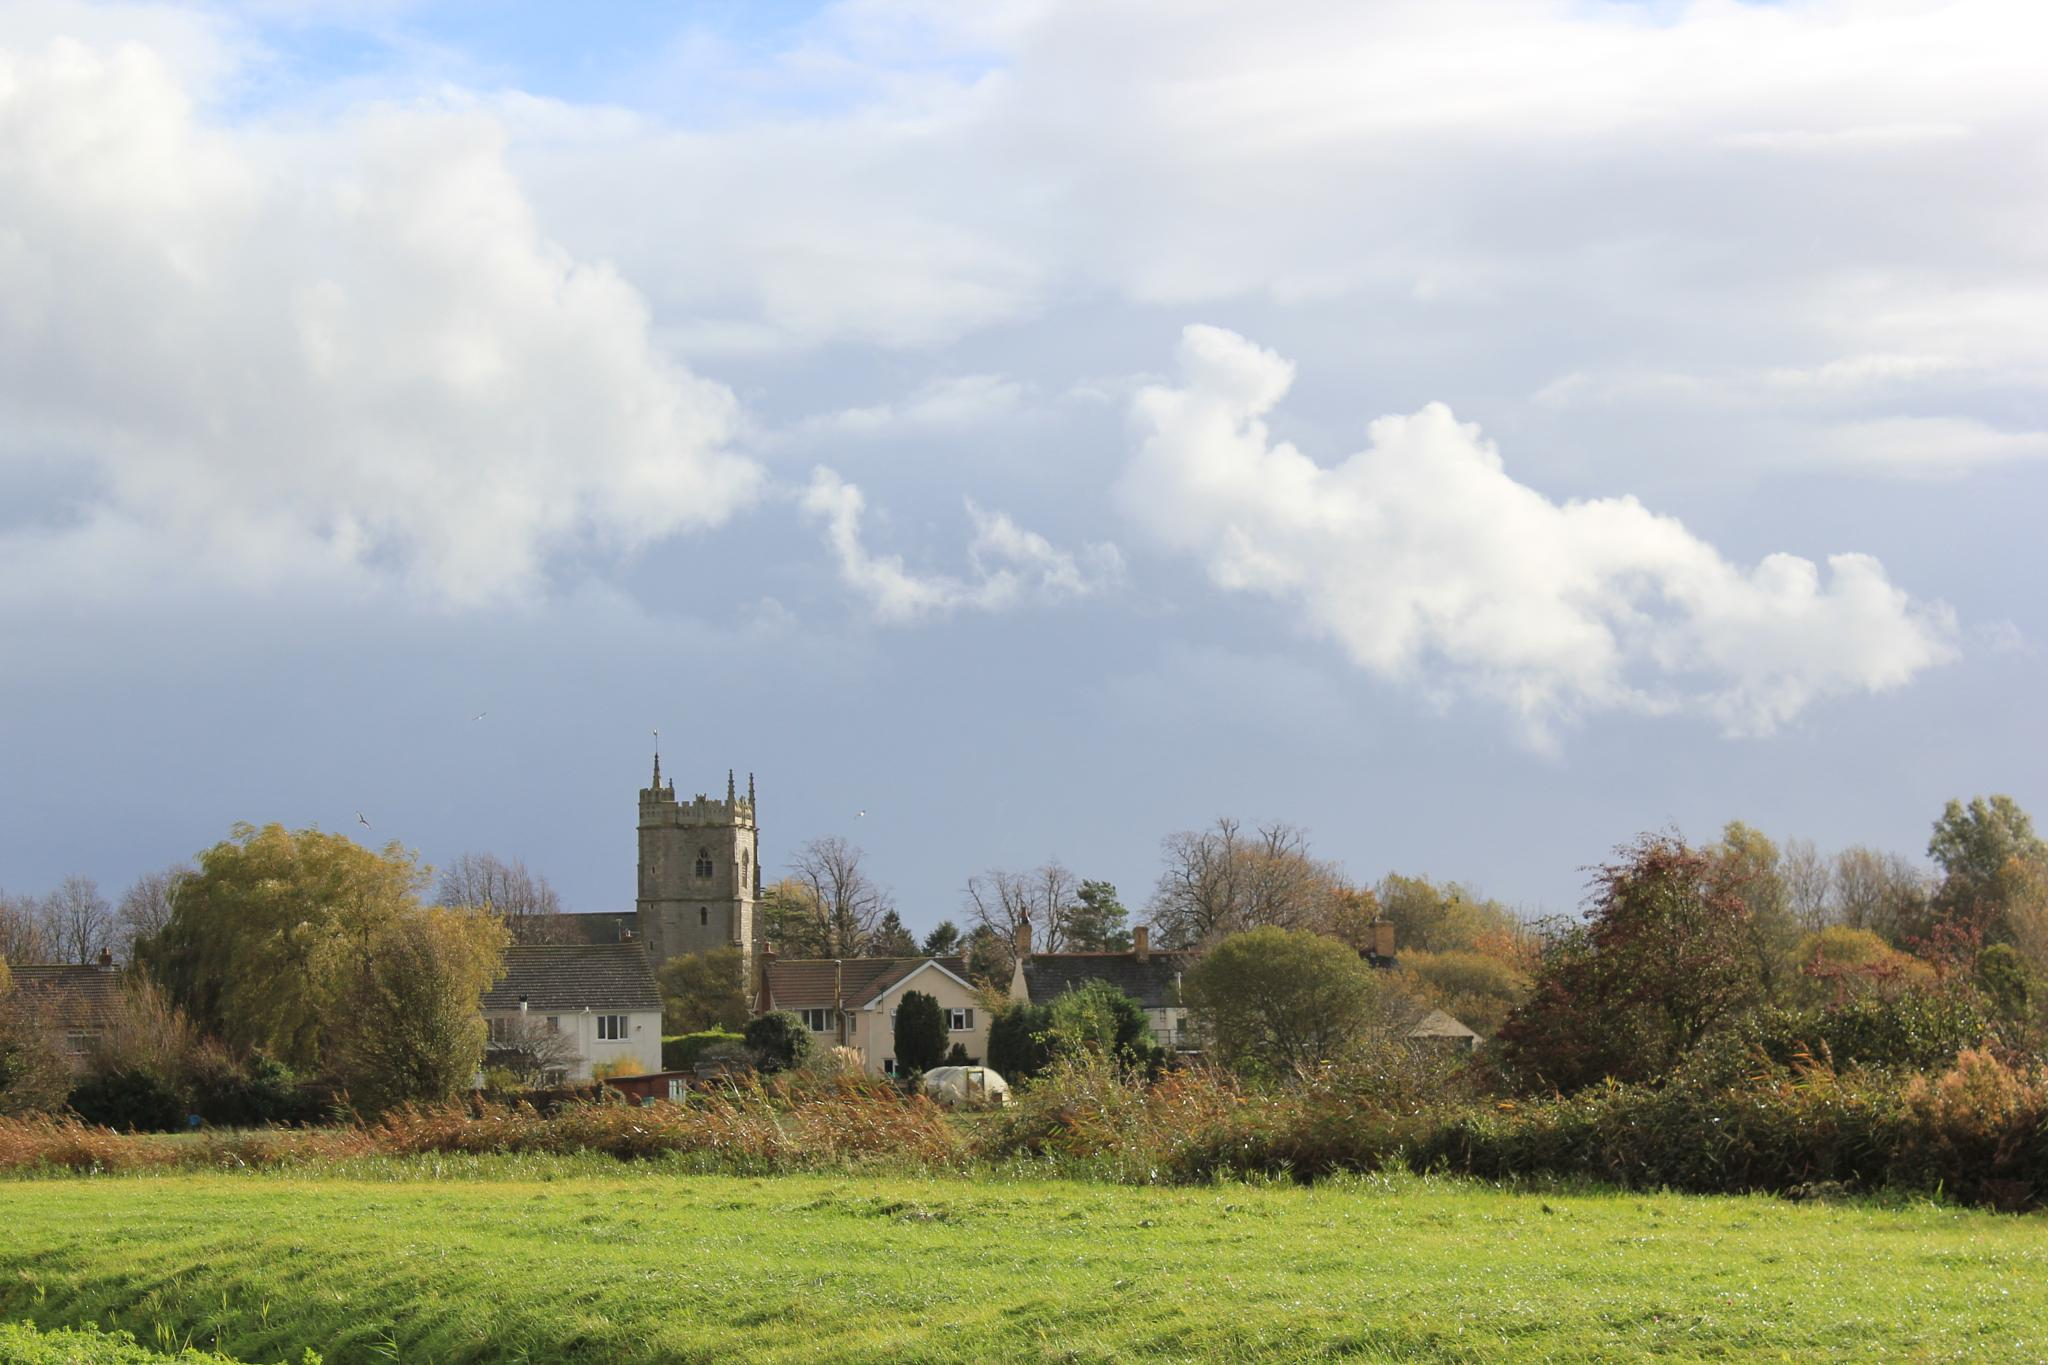 Peterstone Village, Monmouthshire by ralph.cook2